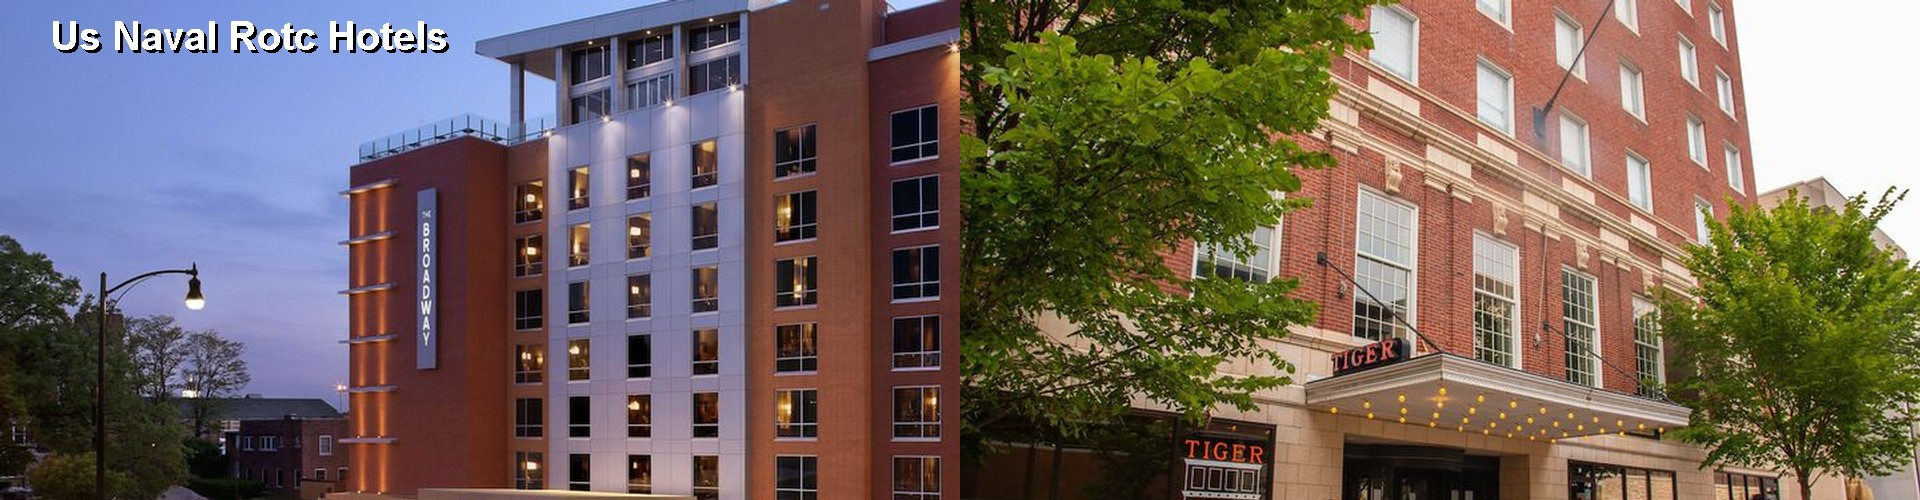 5 Best Hotels near Us Naval Rotc